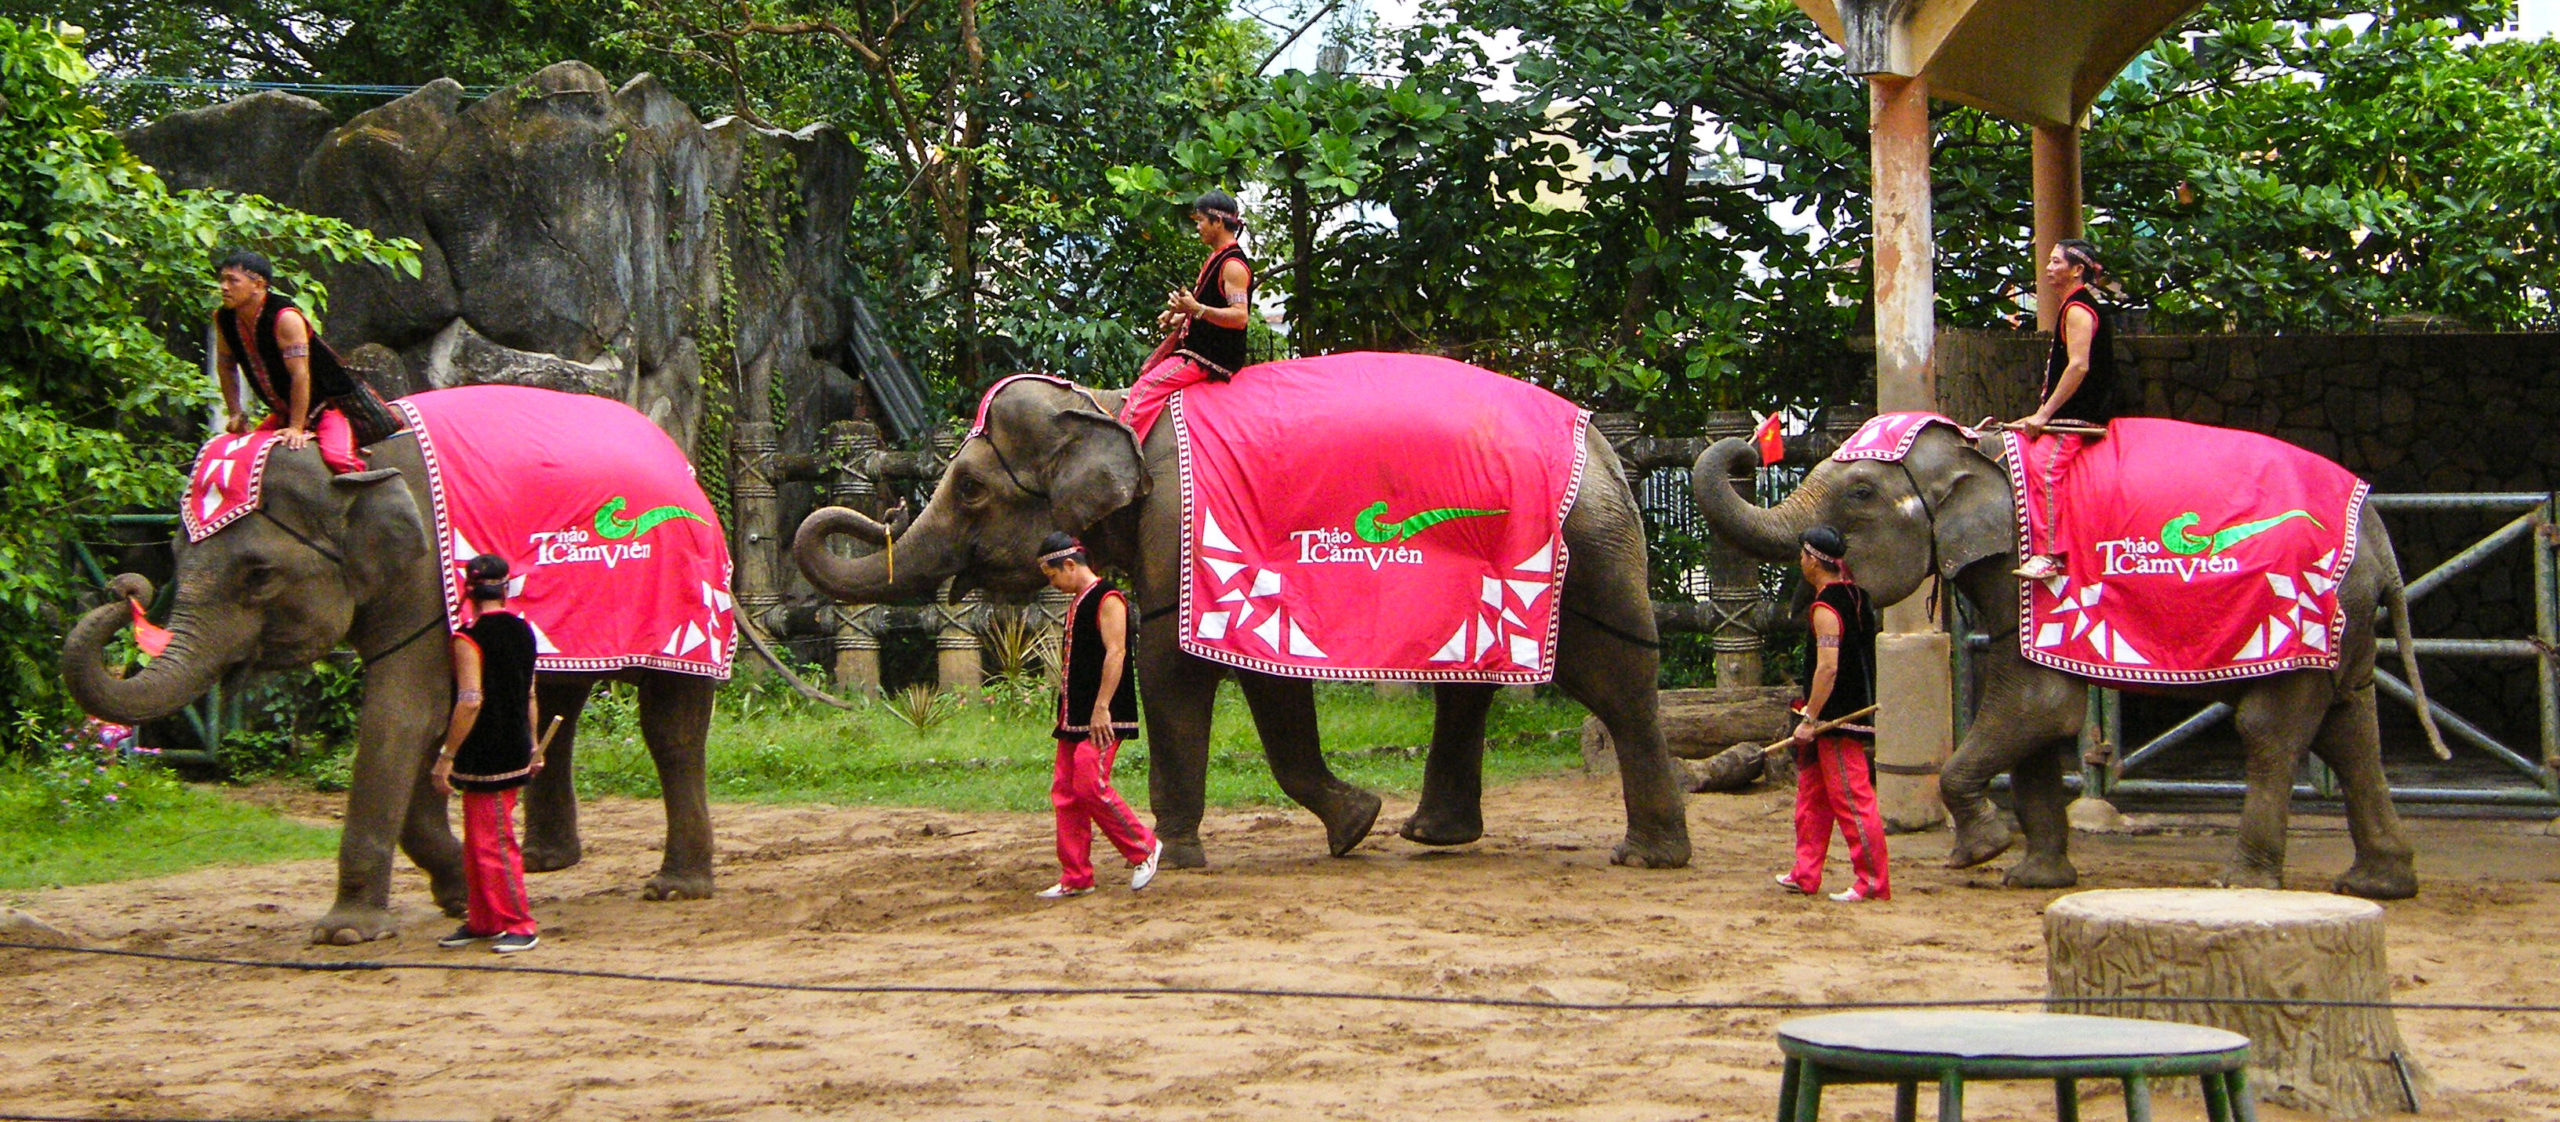 Unethical elephant circus show in Vietnam